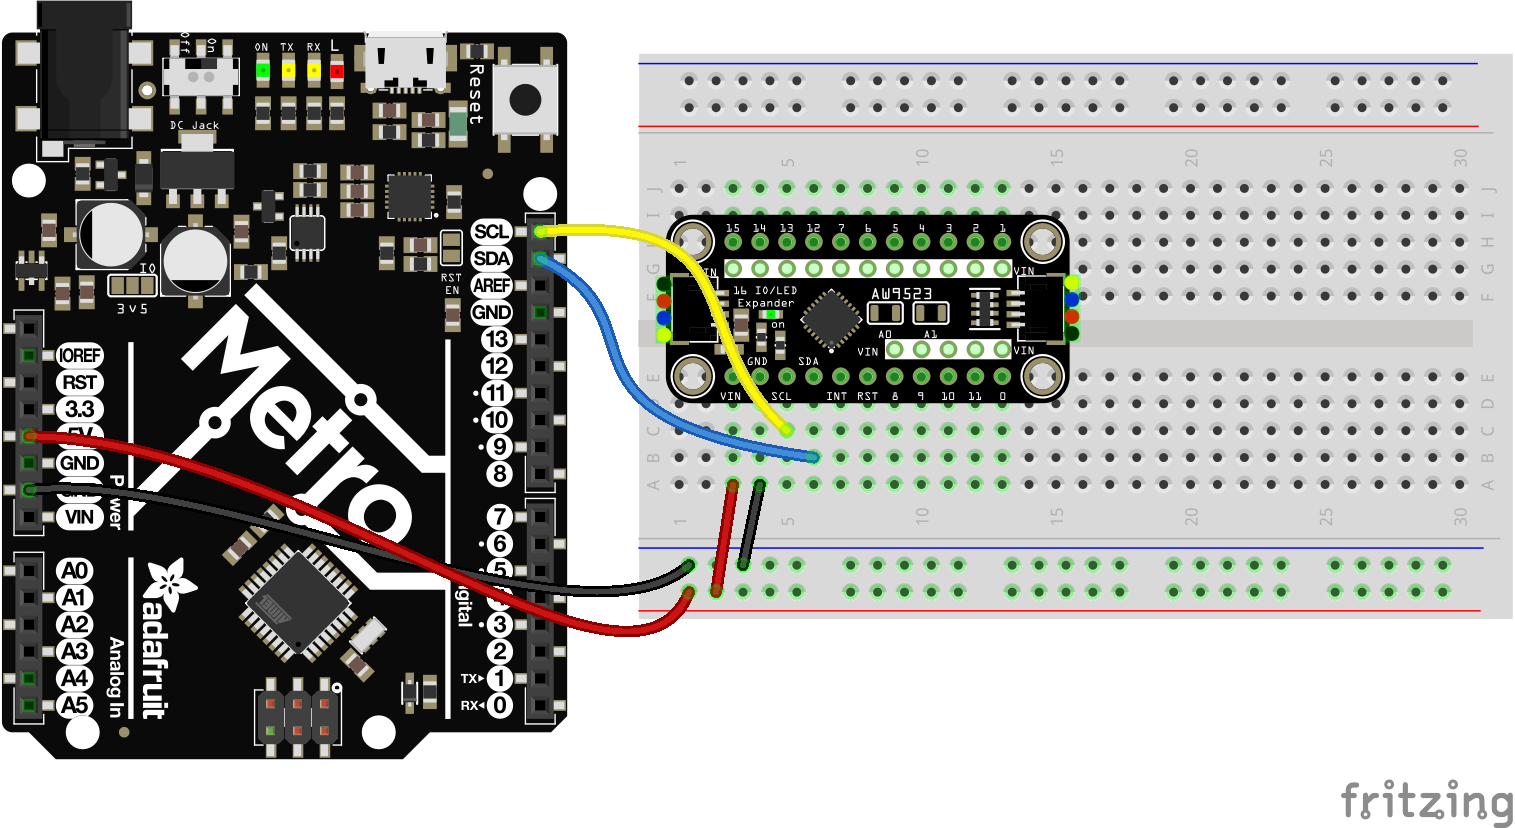 adafruit_products_AW9523_Arduino_bb.png